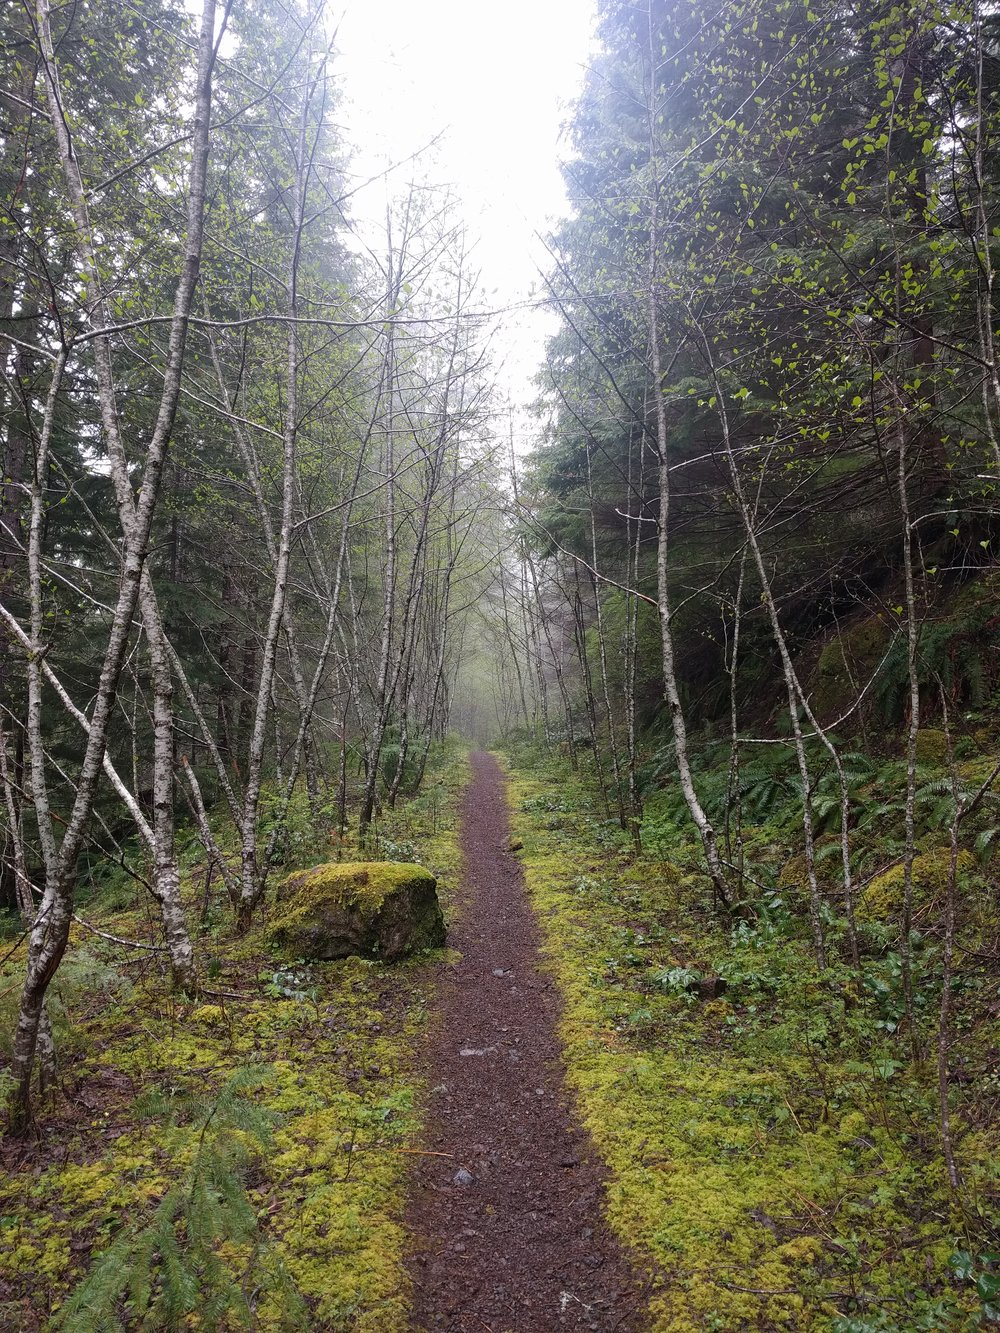 A young birch grove lining the trail.